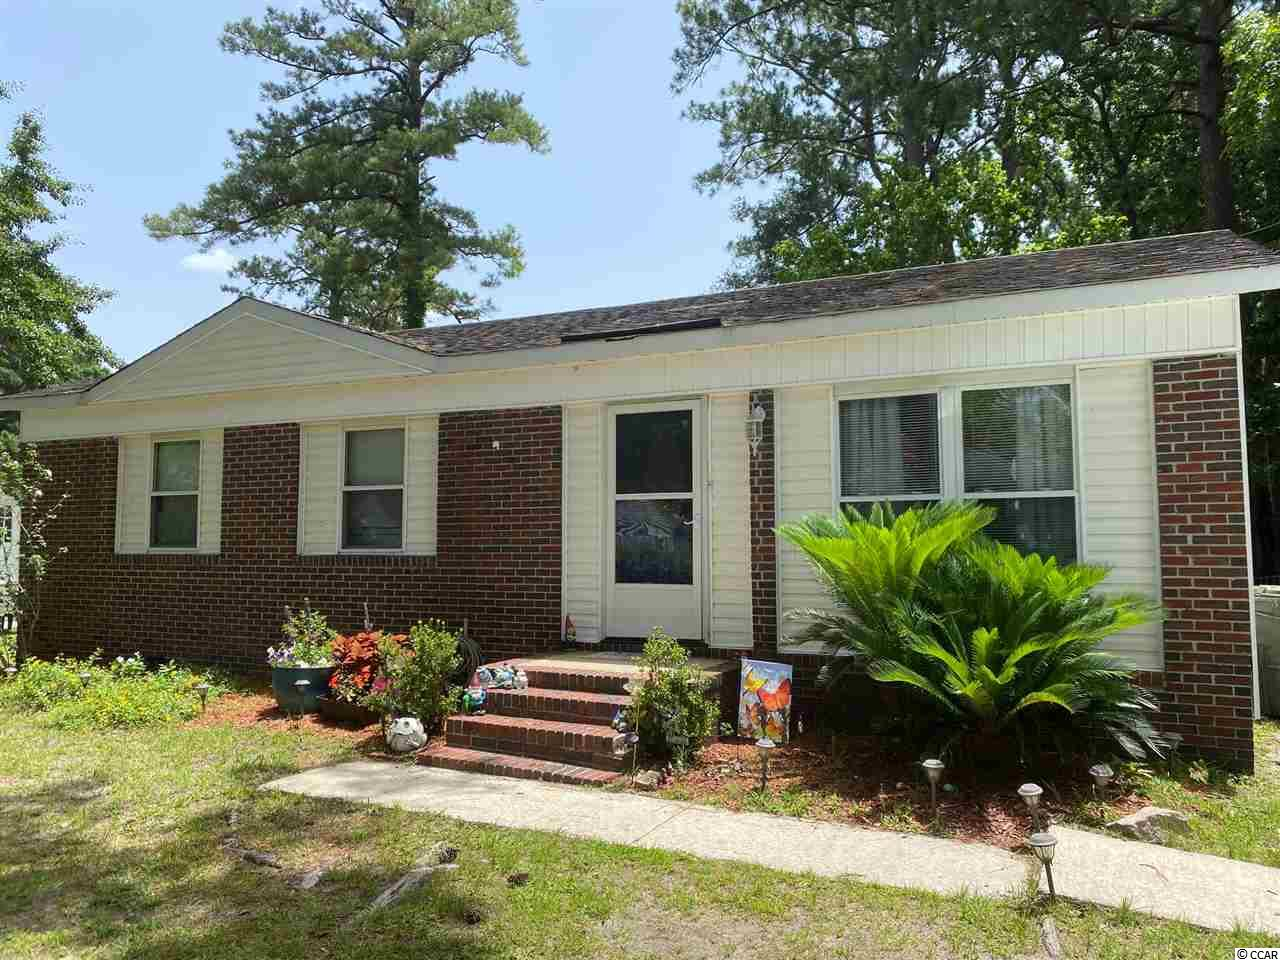 Welcome to this cozy but spacious home with large fenced in back yard. Newly updated kitchen with granite counters and upgraded cabinets. Move in condition with fresh paint and flooring. Master bedroom is spacious and offers a half bath. Home is located close to Winyah bay! Public boat lands are minutes away. You don't want to let this one get away...